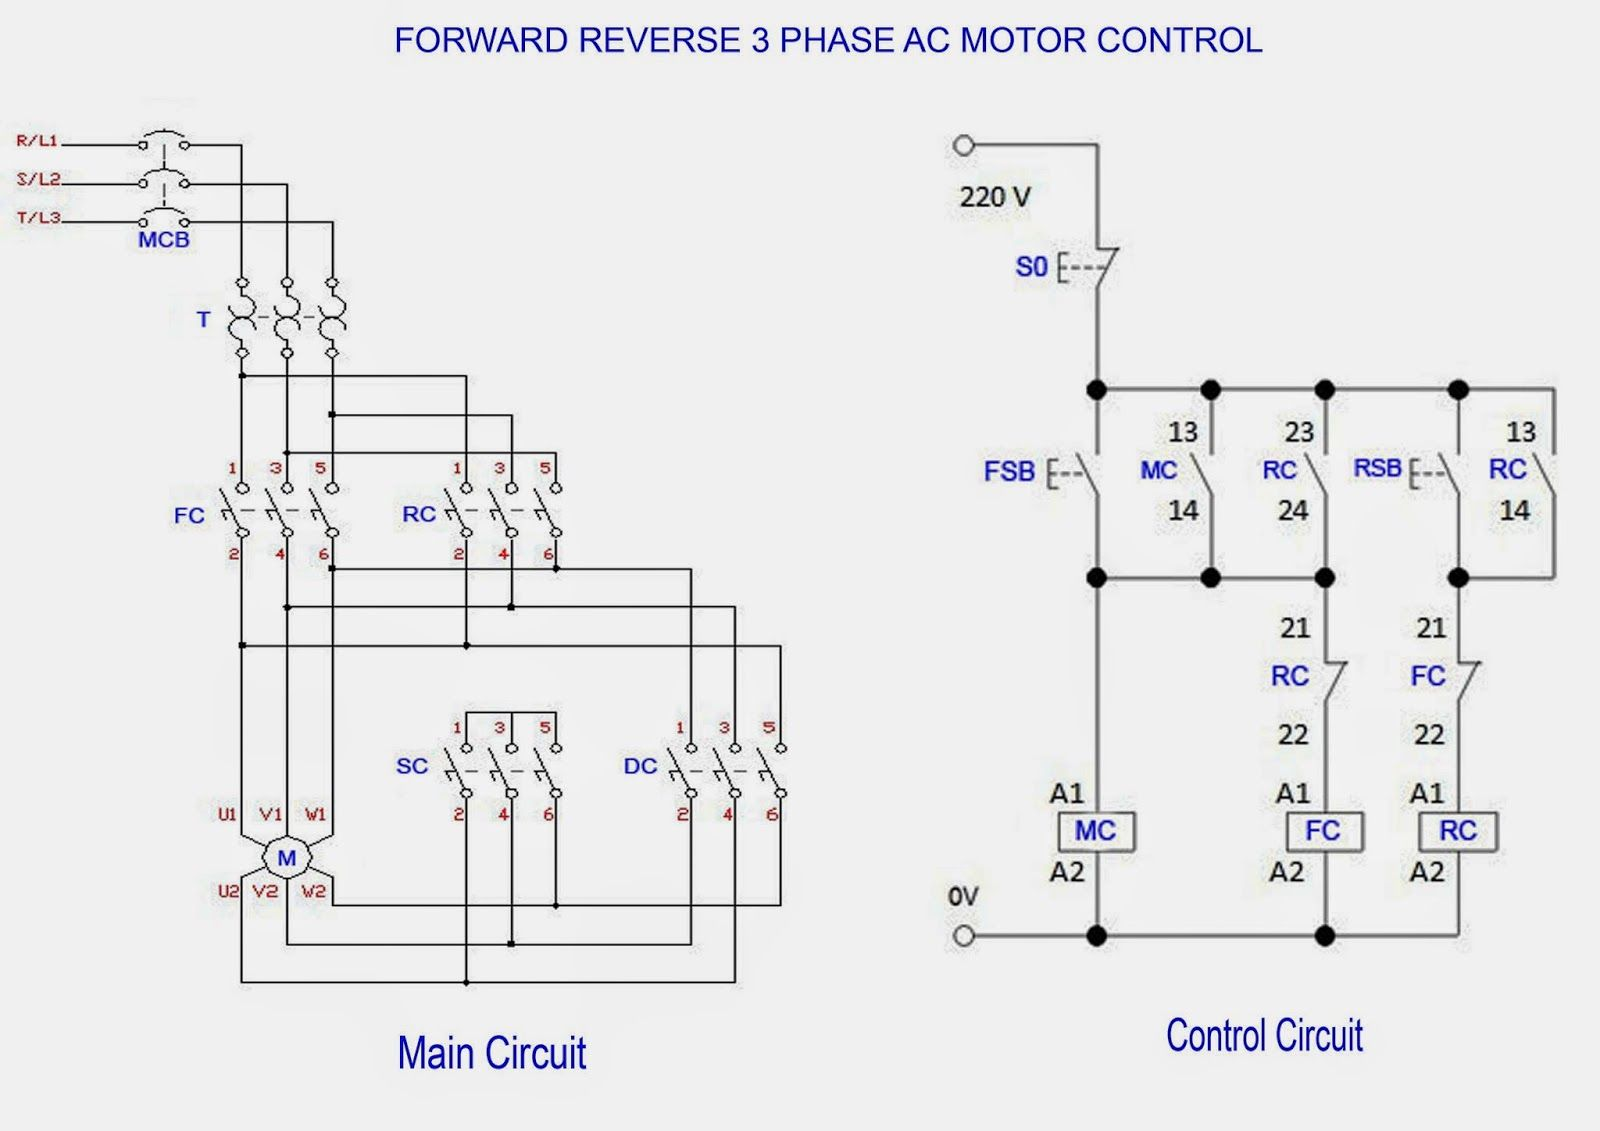 Forward Reverse 3 Phase AC Motor Control Wiring Diagram ... on